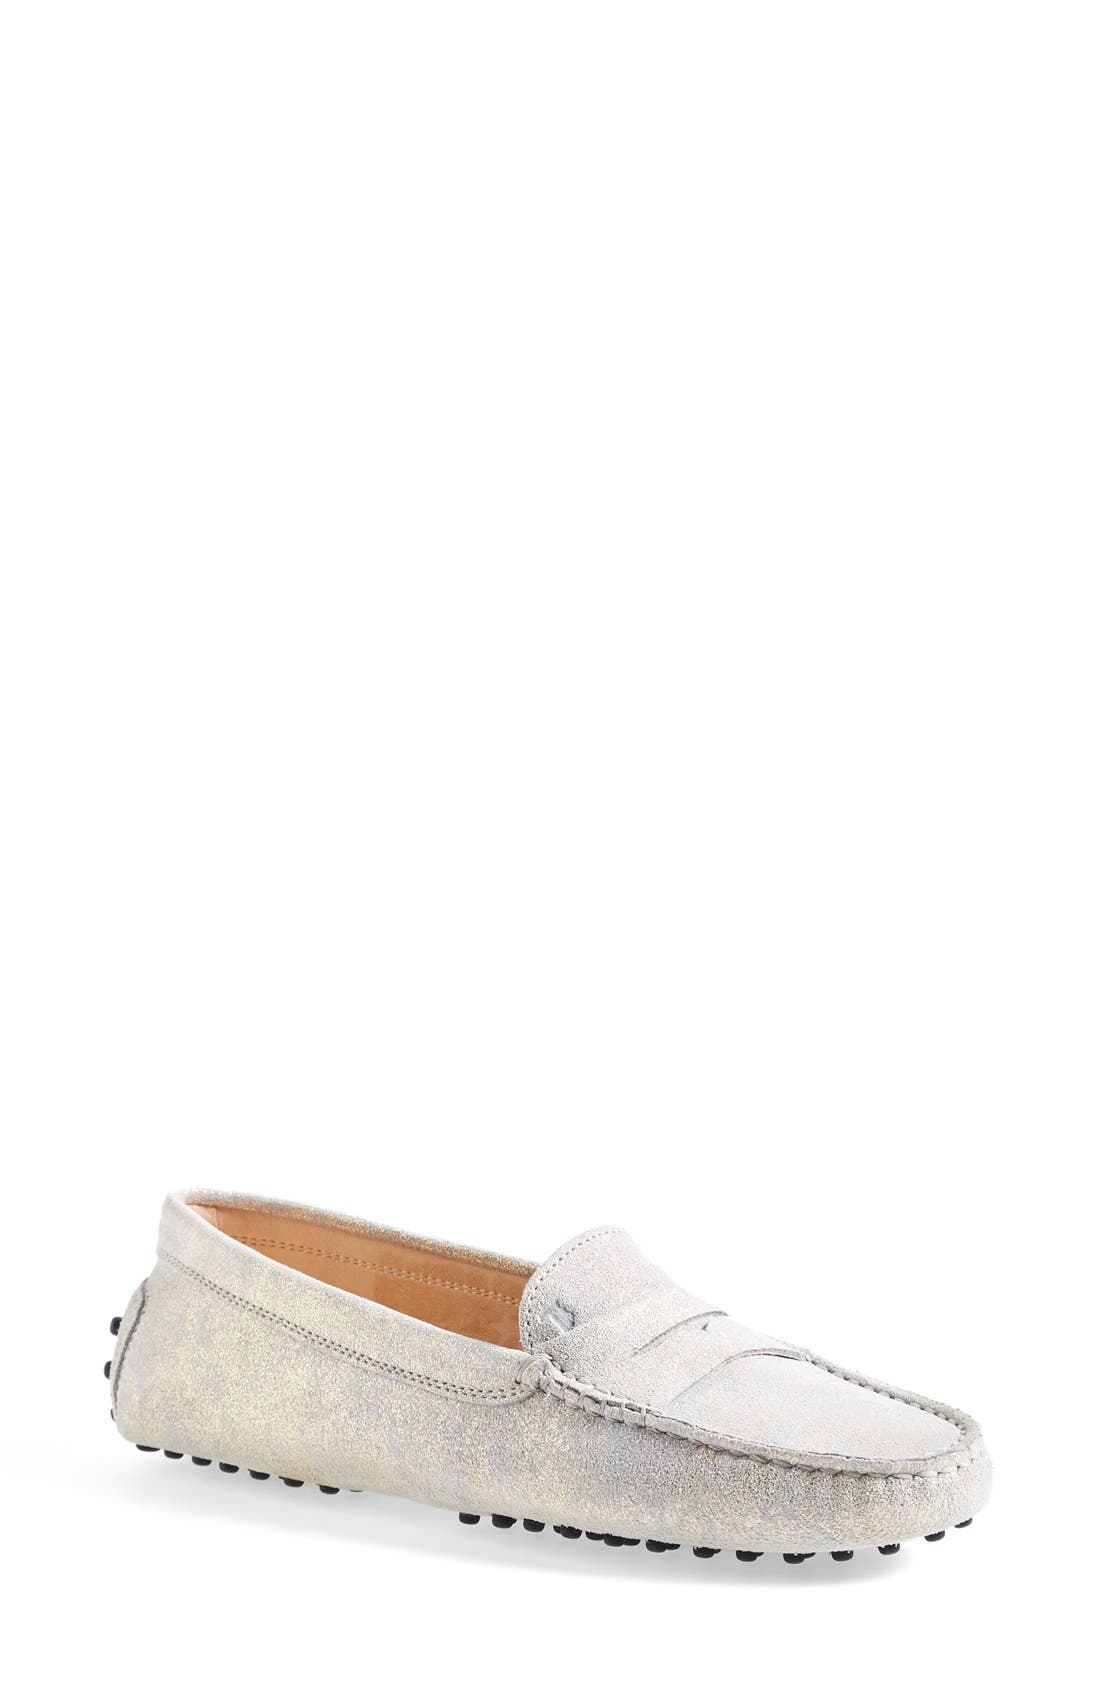 Main Image - Tod's 'Gommini' Metallic Suede Penny Loafer (Women)